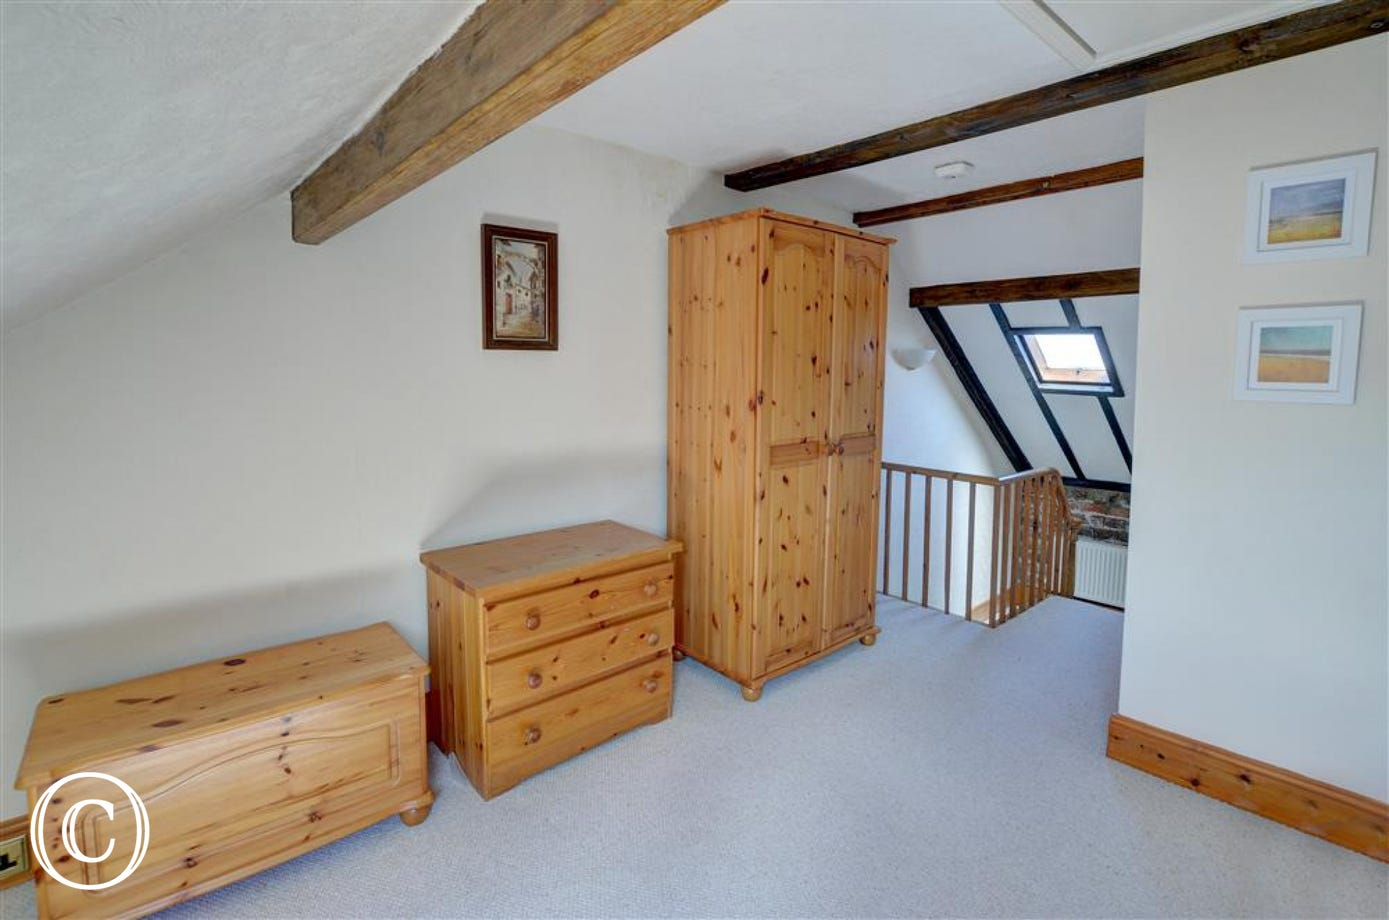 Bedroom 3 has an open staircase,